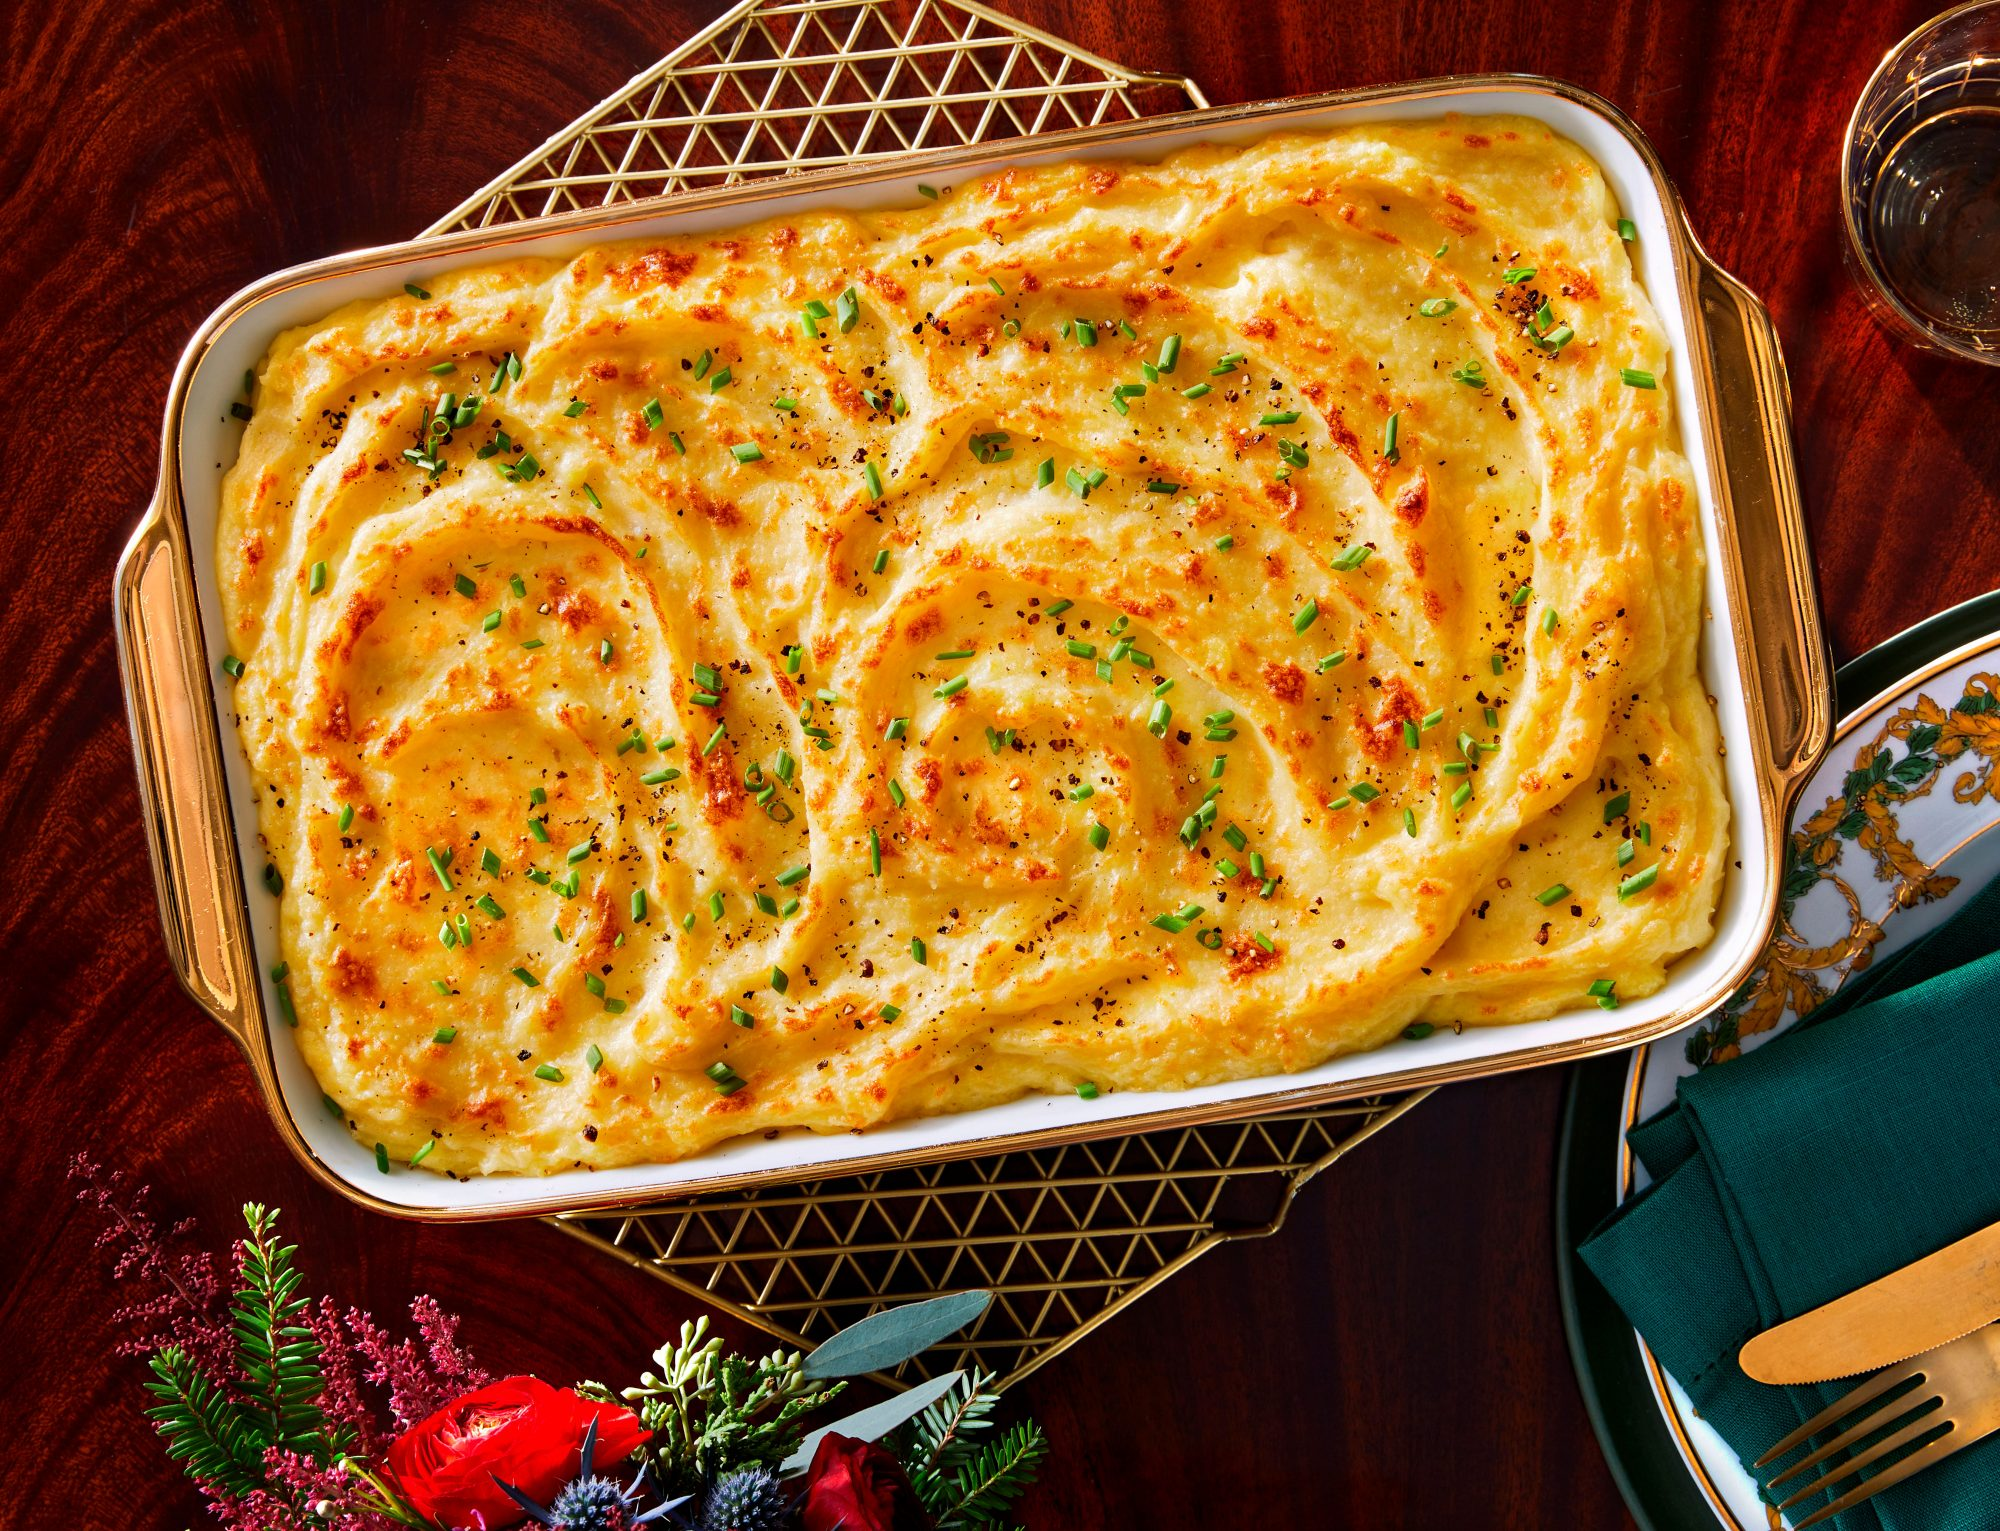 Creamy Whipped Potato Casserole